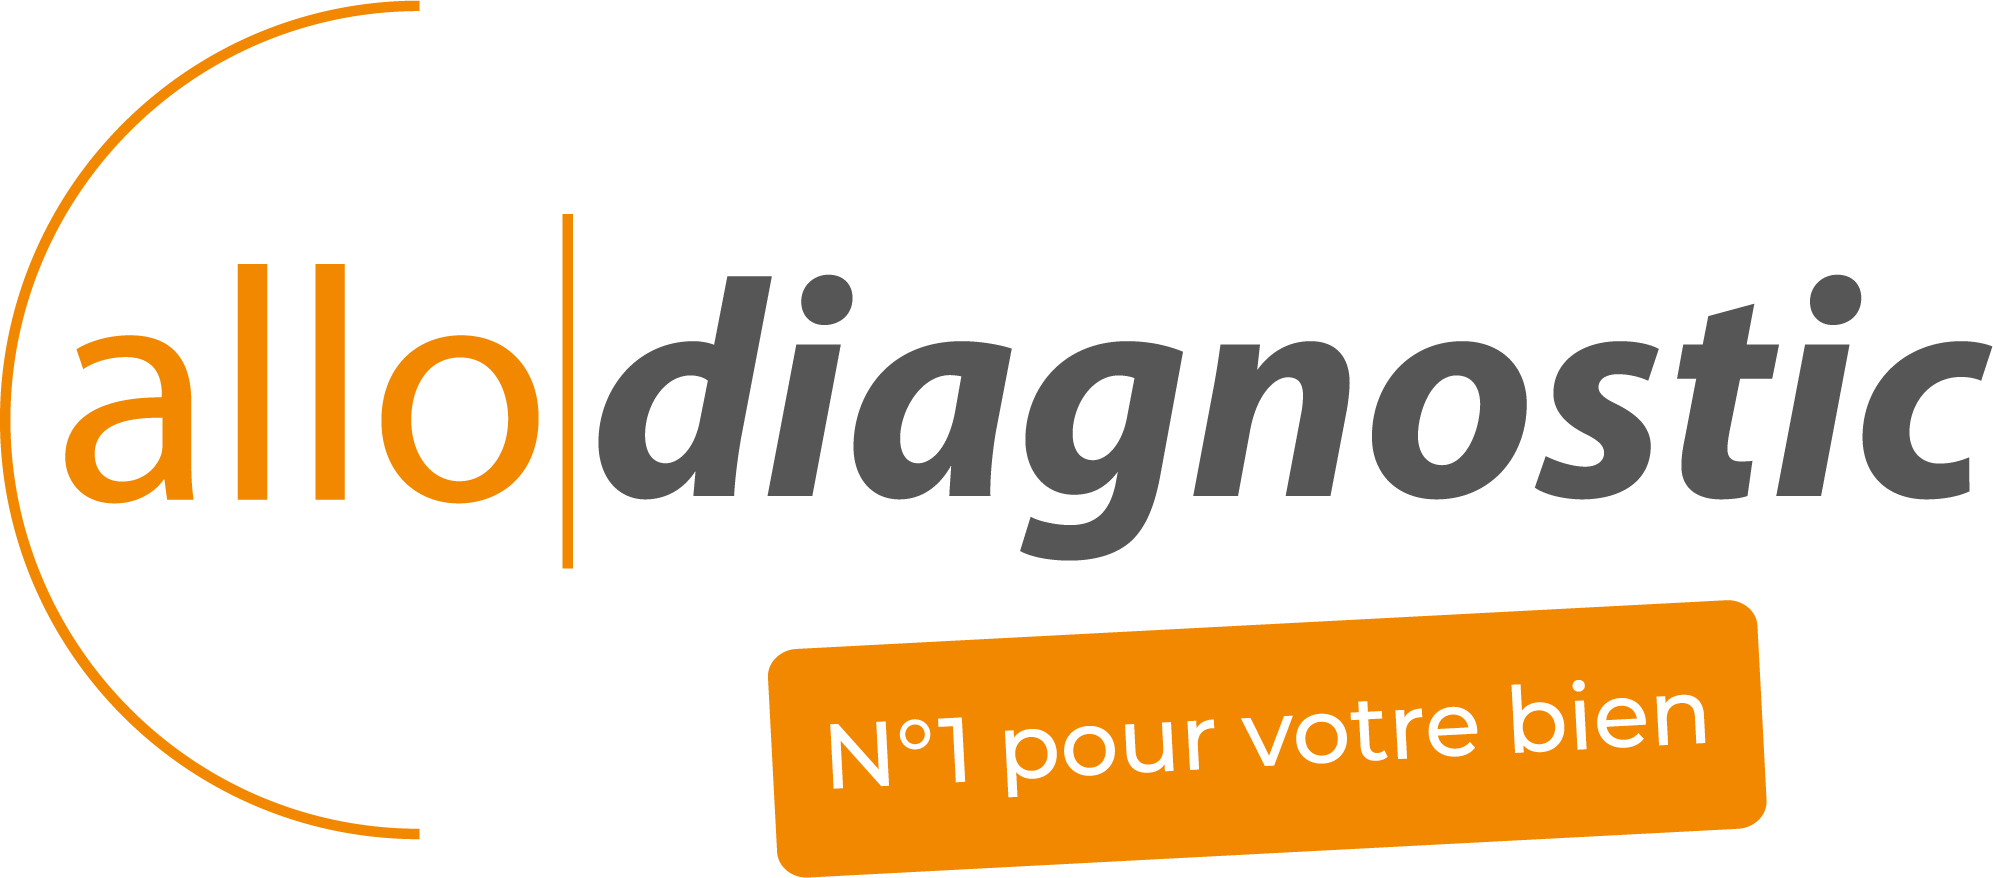 allodiagnostics